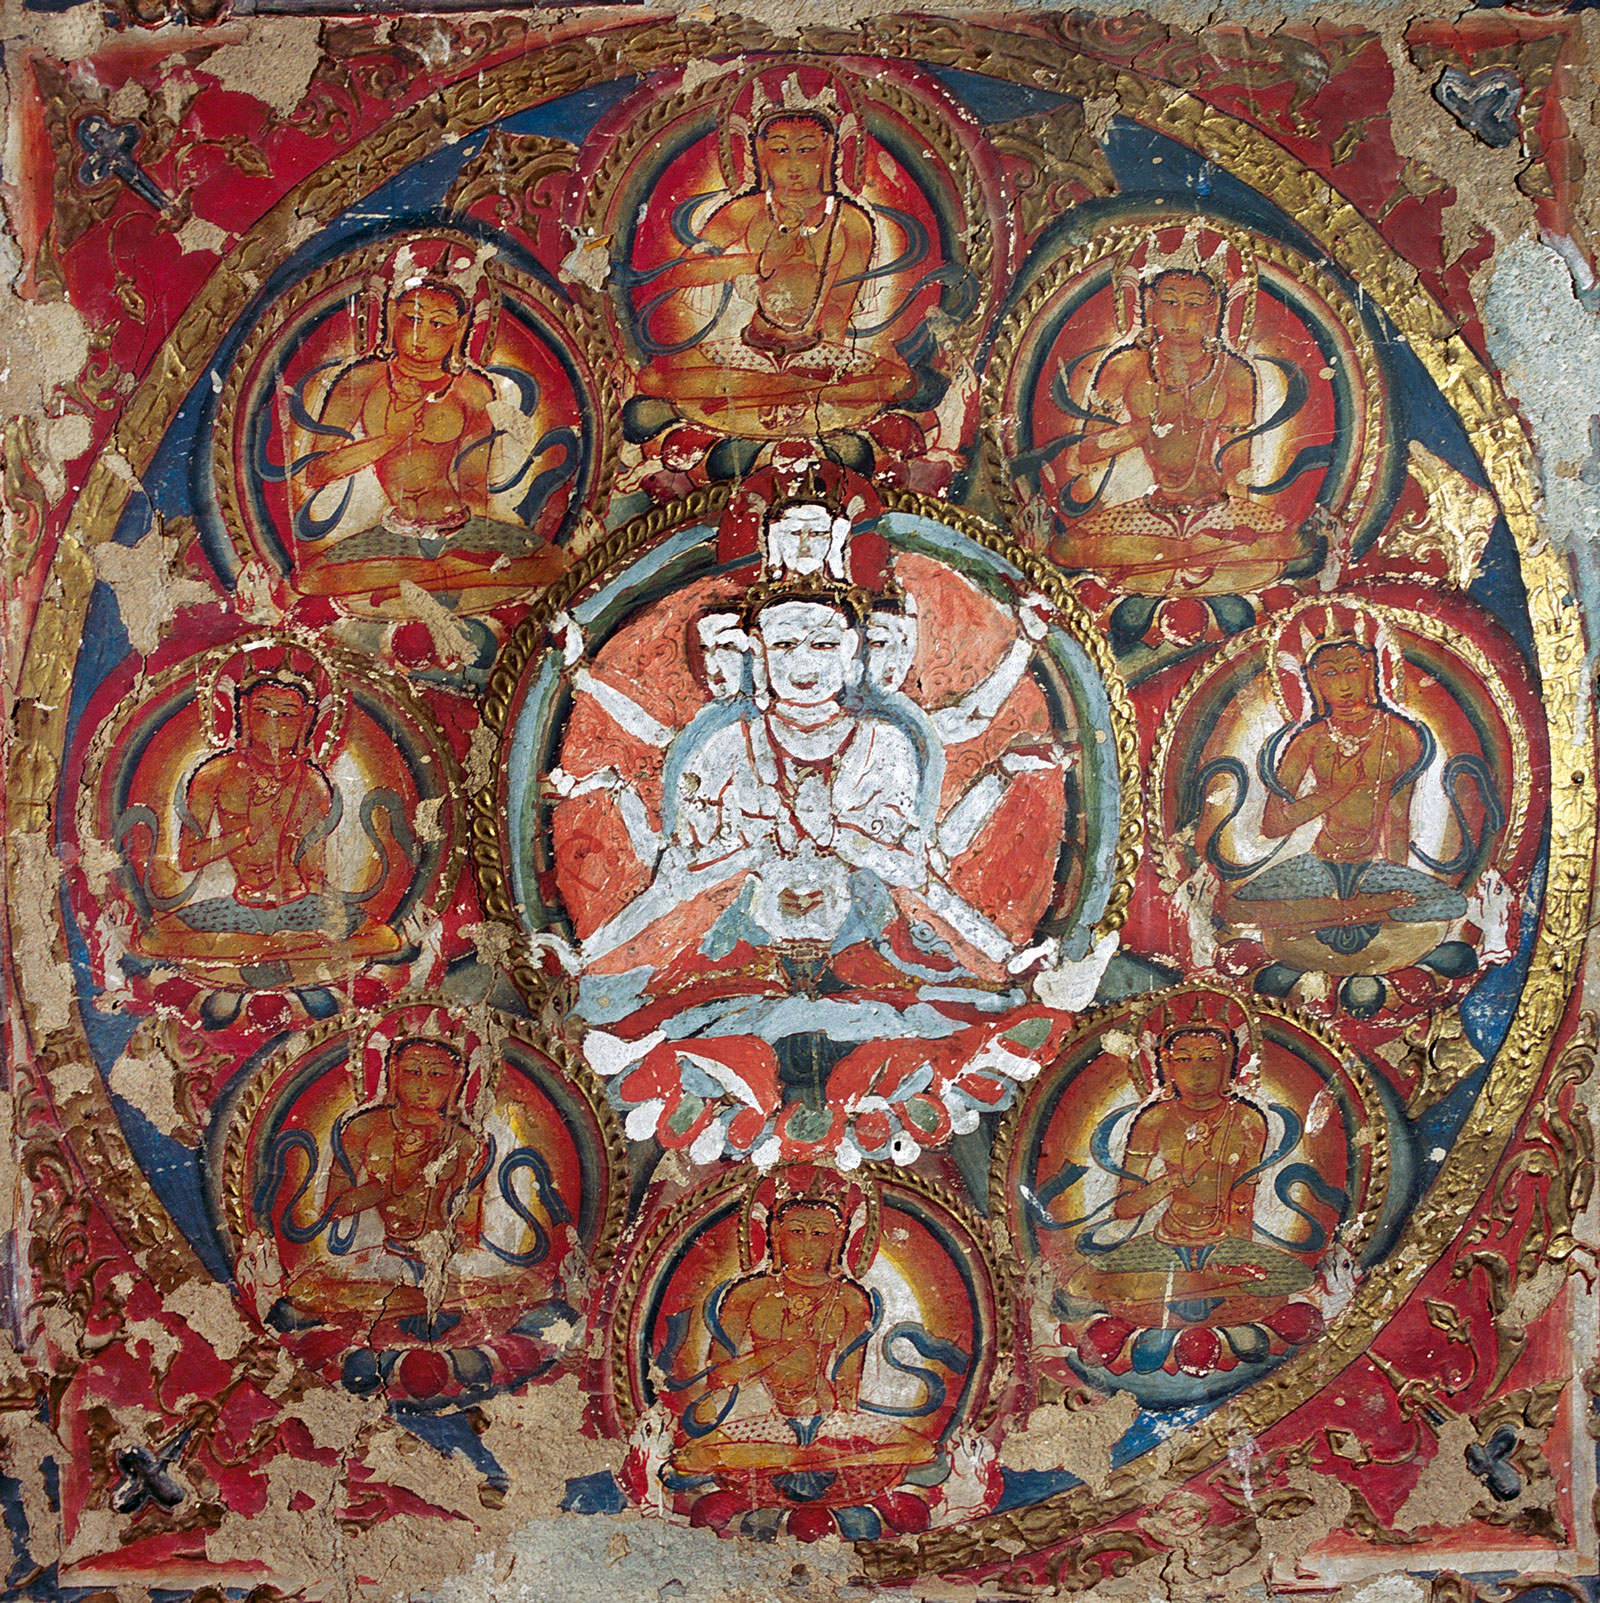 Detail of the Manjushri Mandala at the Temple of the Great Translator, Nako, late eleventh to early twelfth century